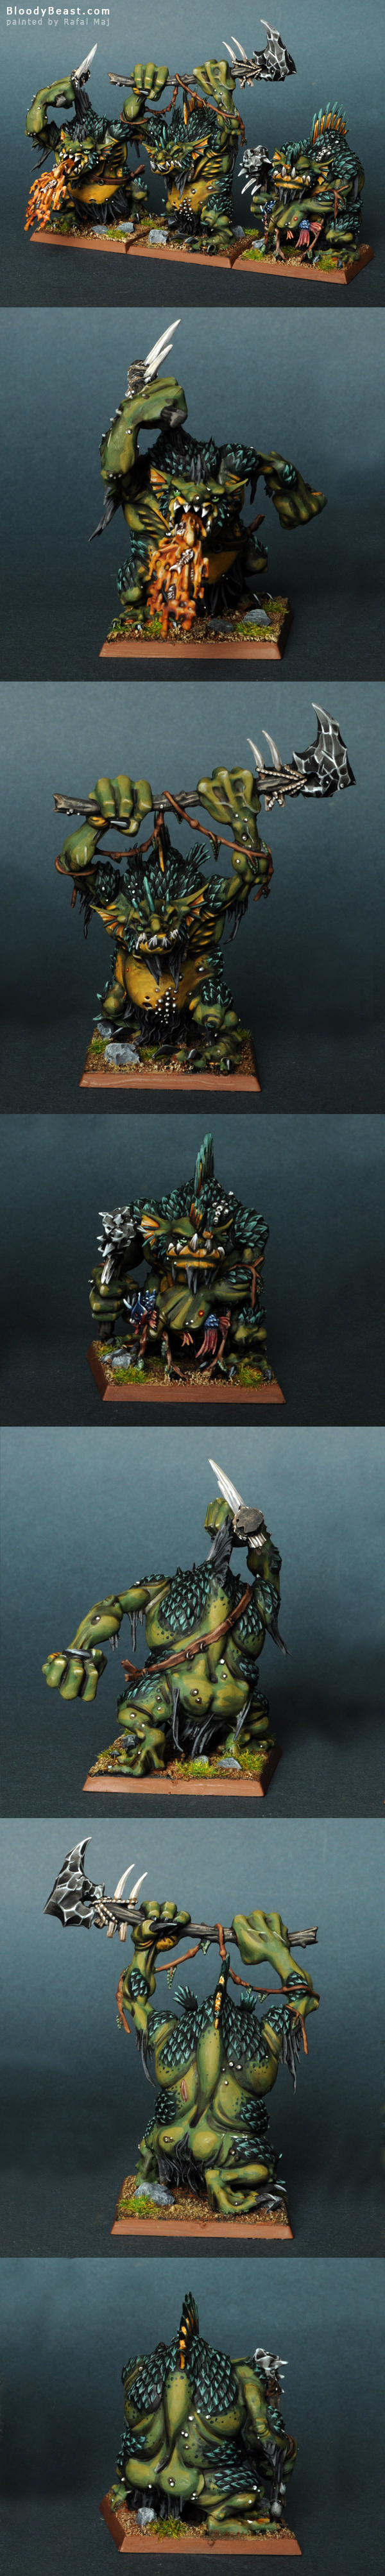 River Trolls painted by Rafal Maj (BloodyBeast.com)